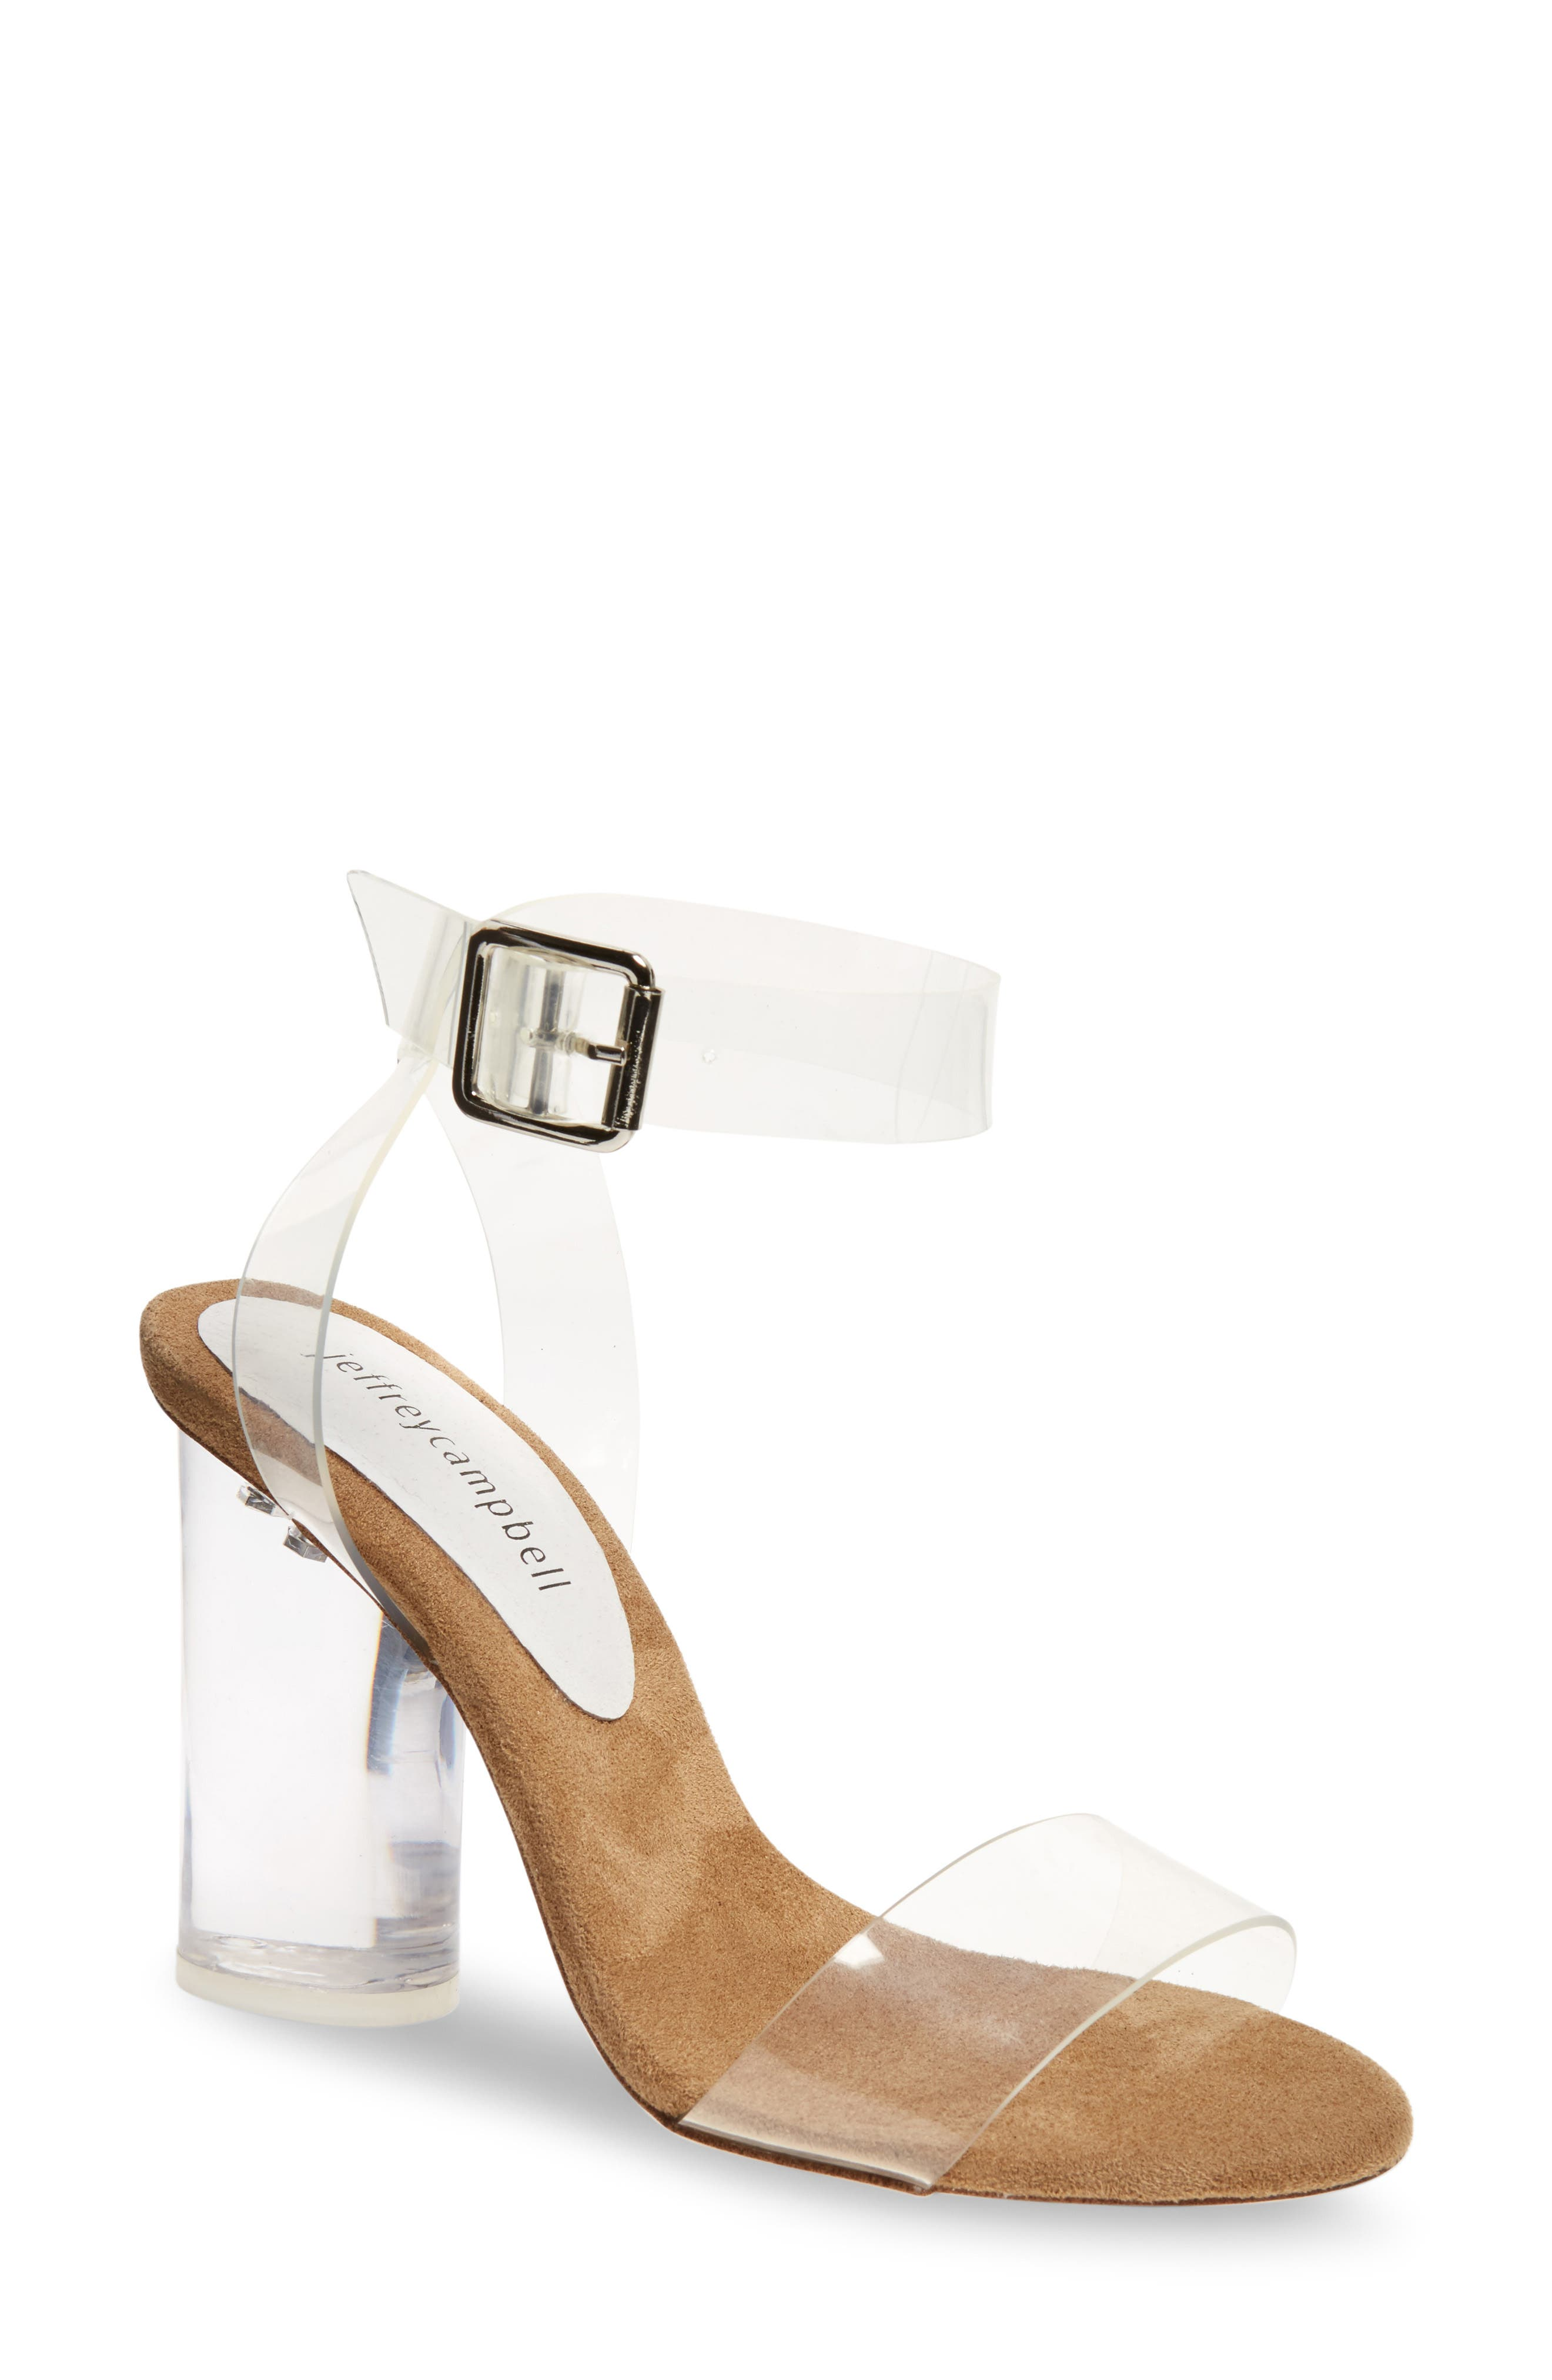 Alternate Image 1 Selected - Jeffrey Campbell Clear Heel Sandal (Women)